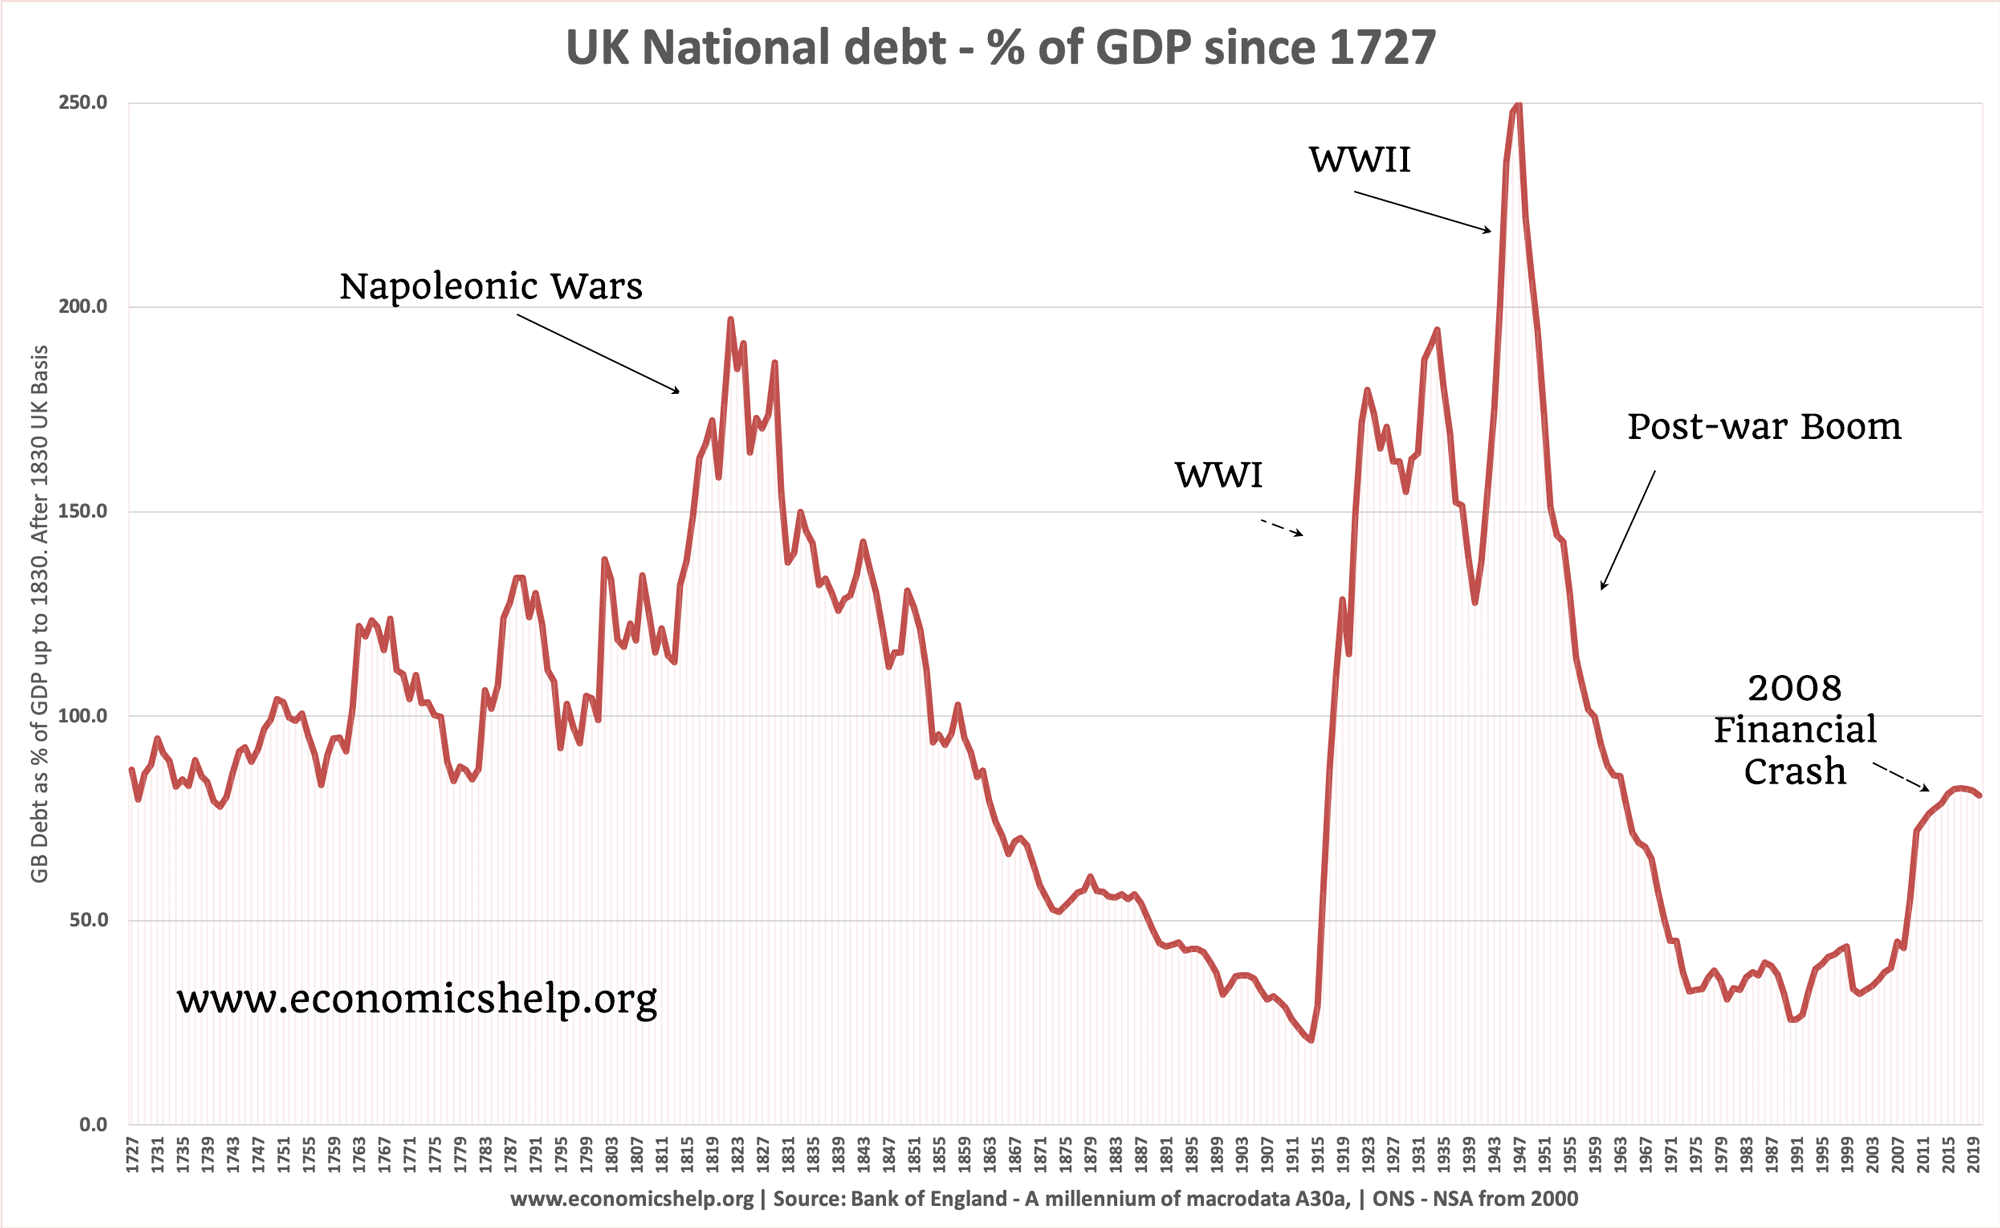 uk-national-debt-since-1727-annotated